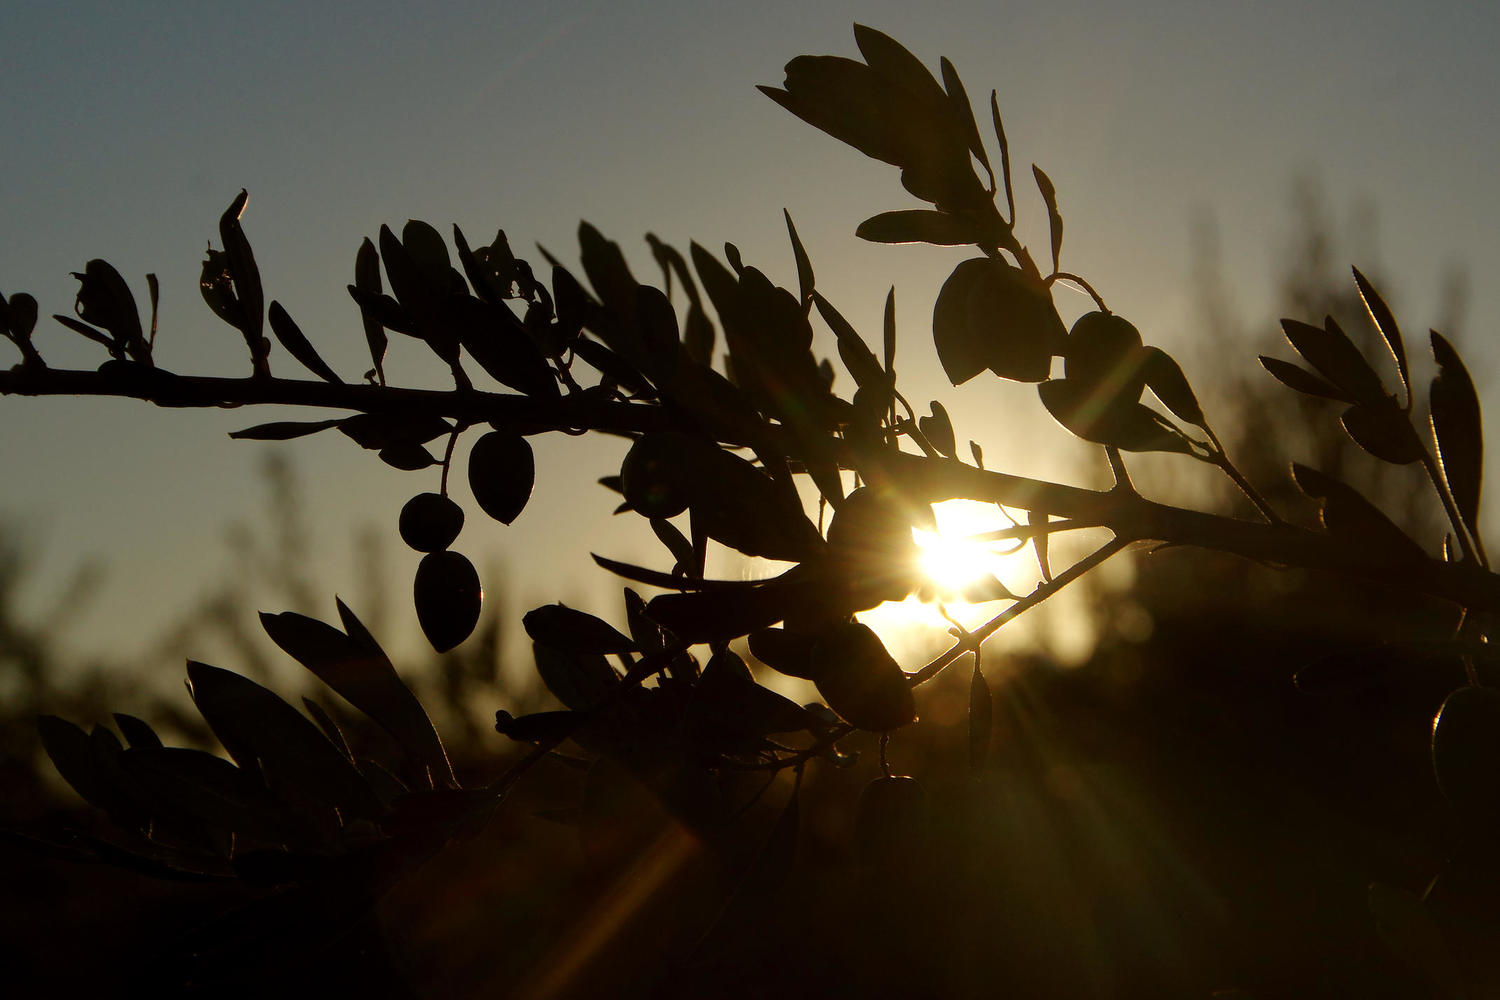 Shadowy outline of olives in the sunset near Priego de Còrdoba